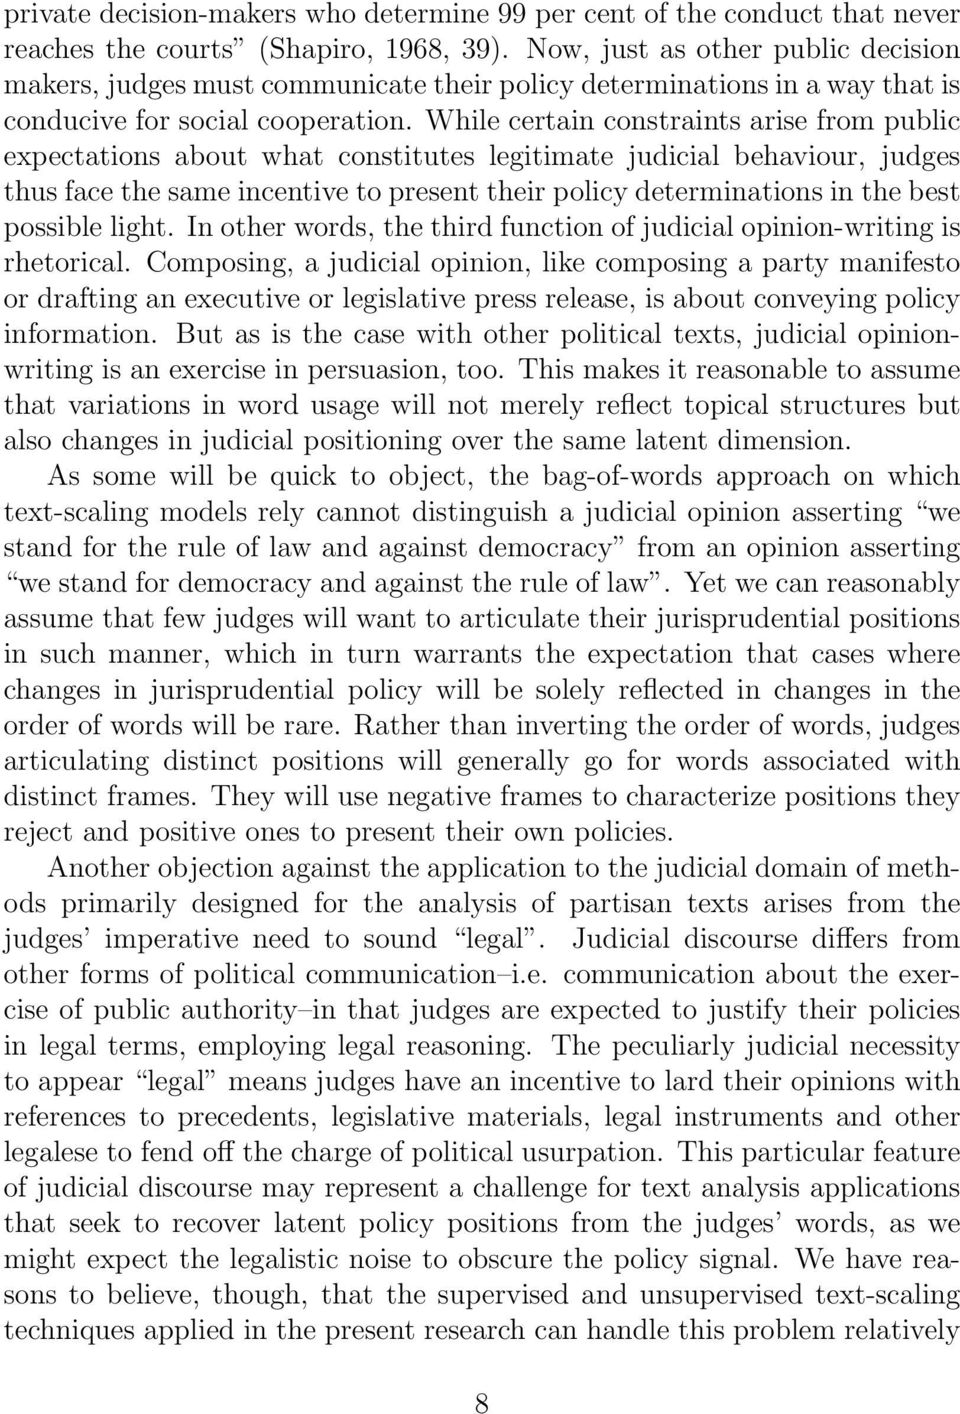 While certain constraints arise from public expectations about what constitutes legitimate judicial behaviour, judges thus face the same incentive to present their policy determinations in the best